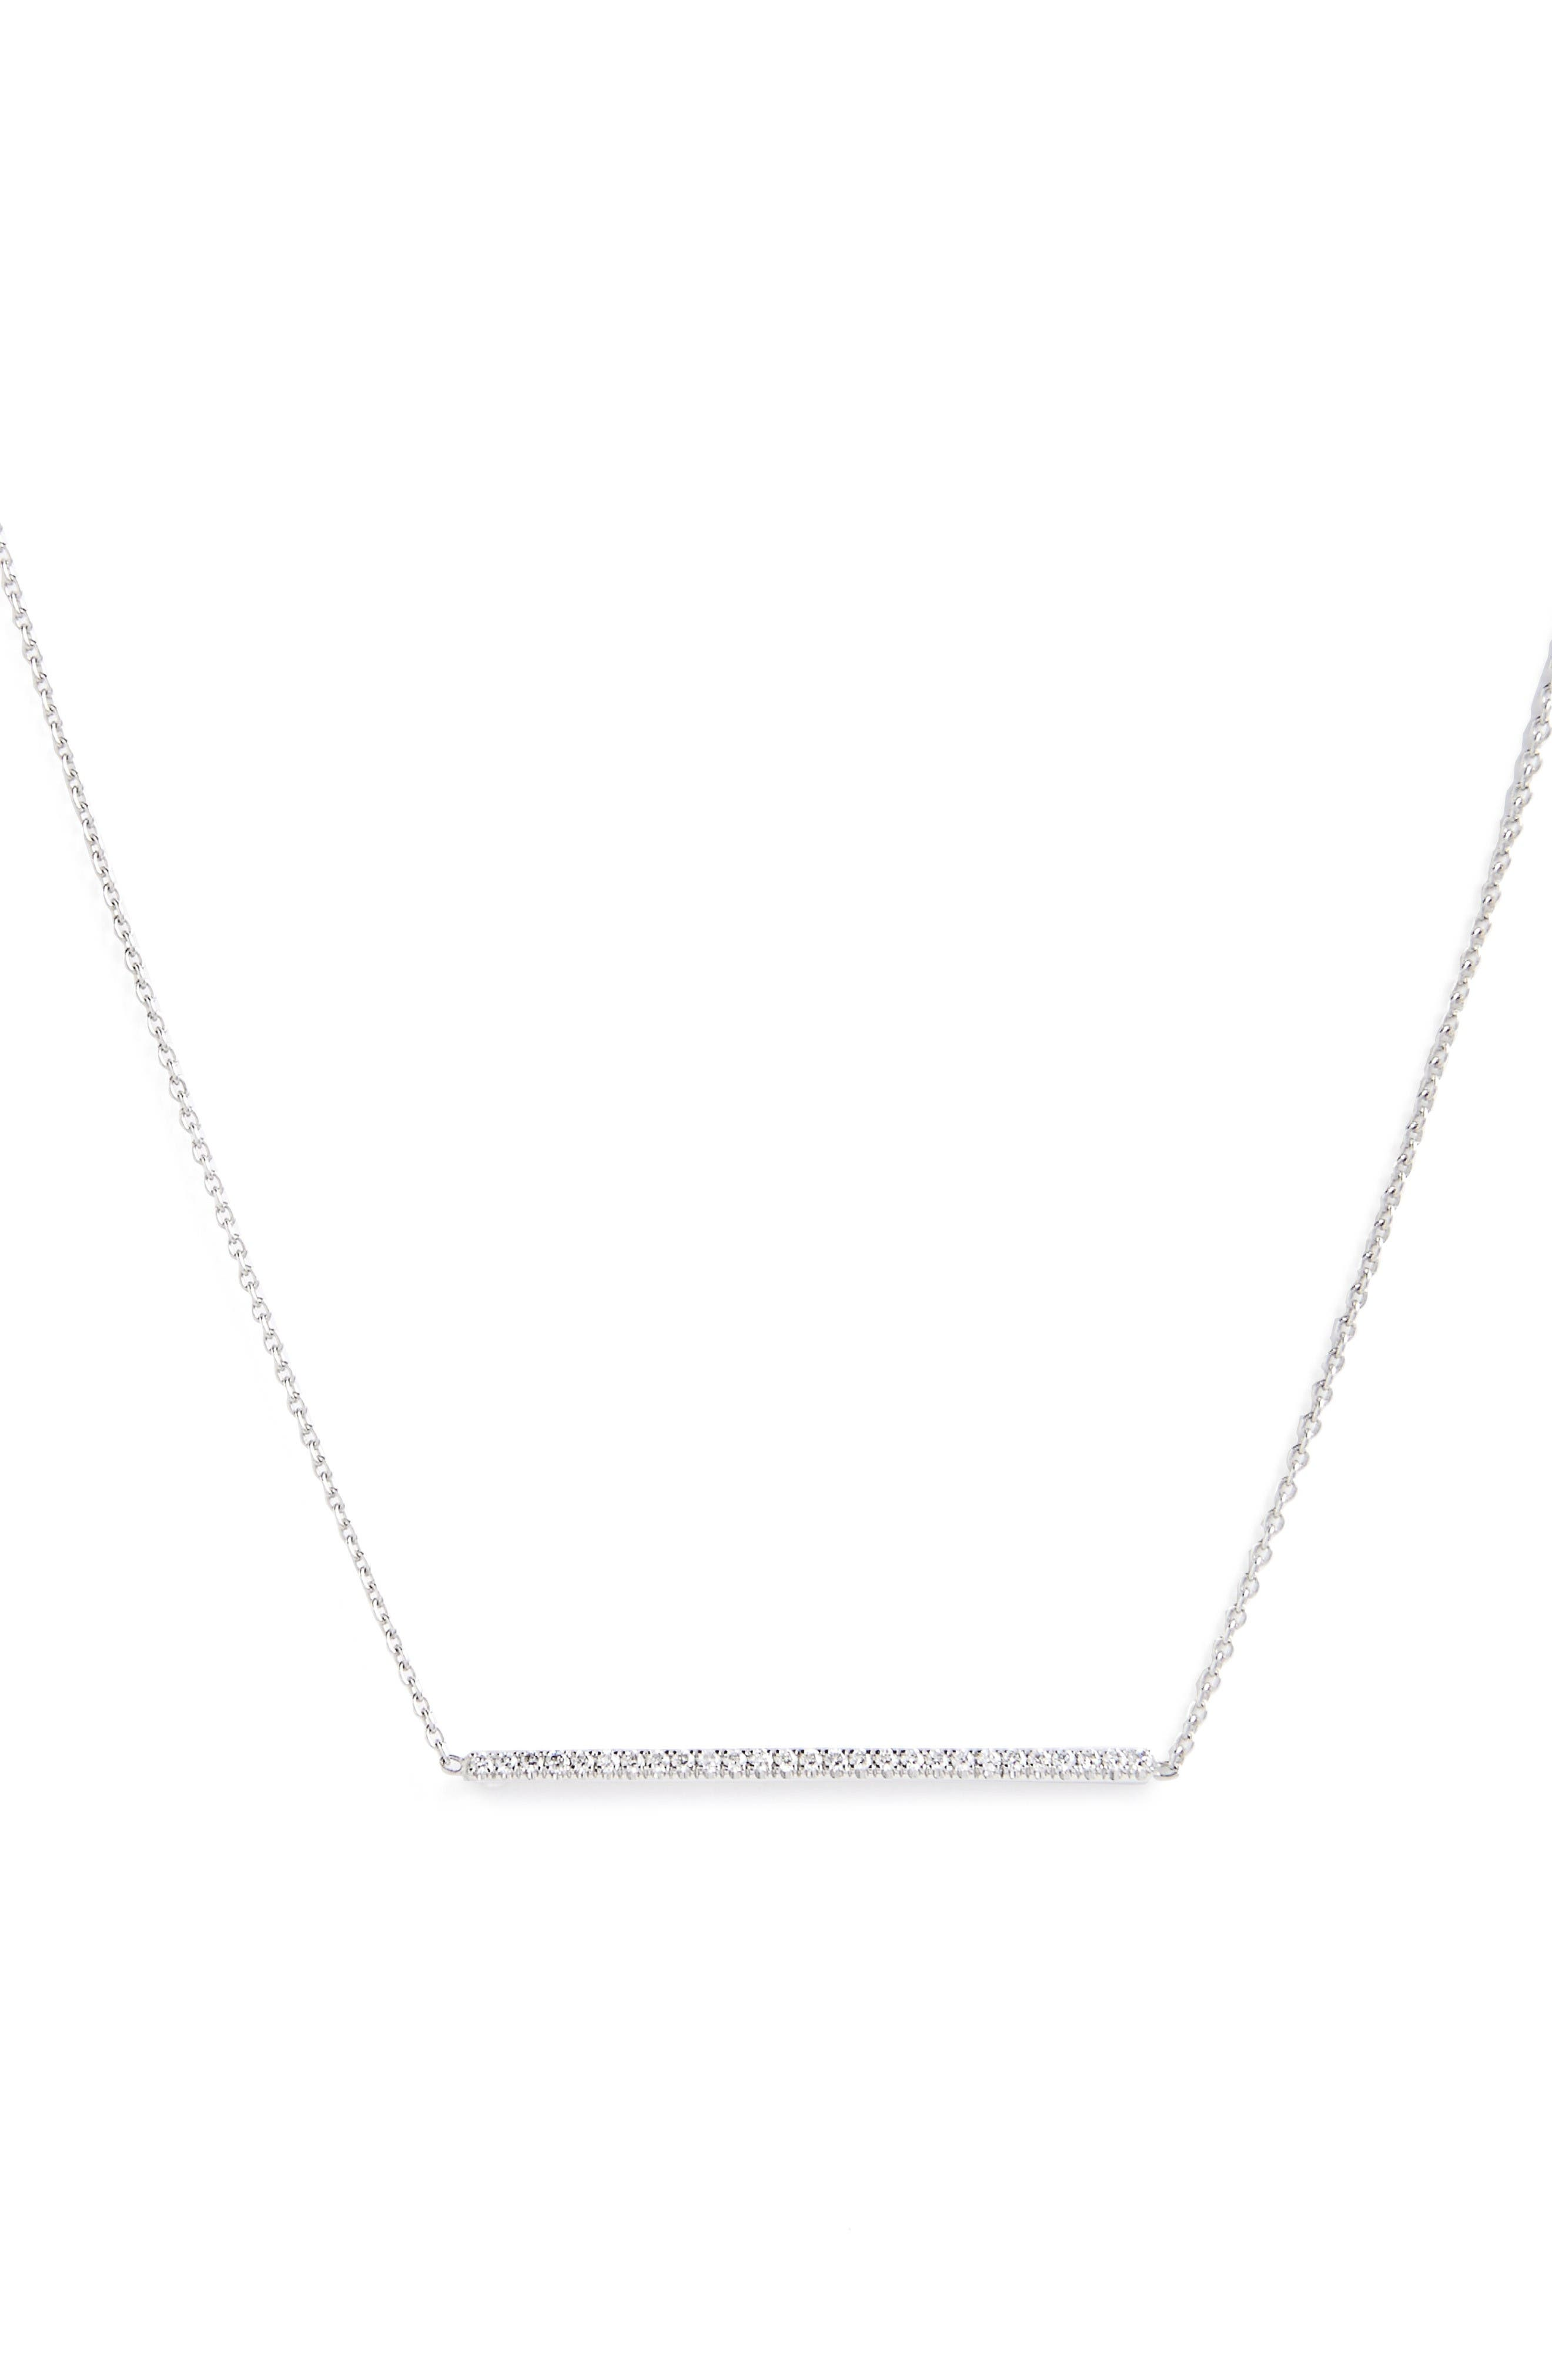 Tiny Treasures Diamond Bar Necklace,                             Main thumbnail 1, color,                             White Gold